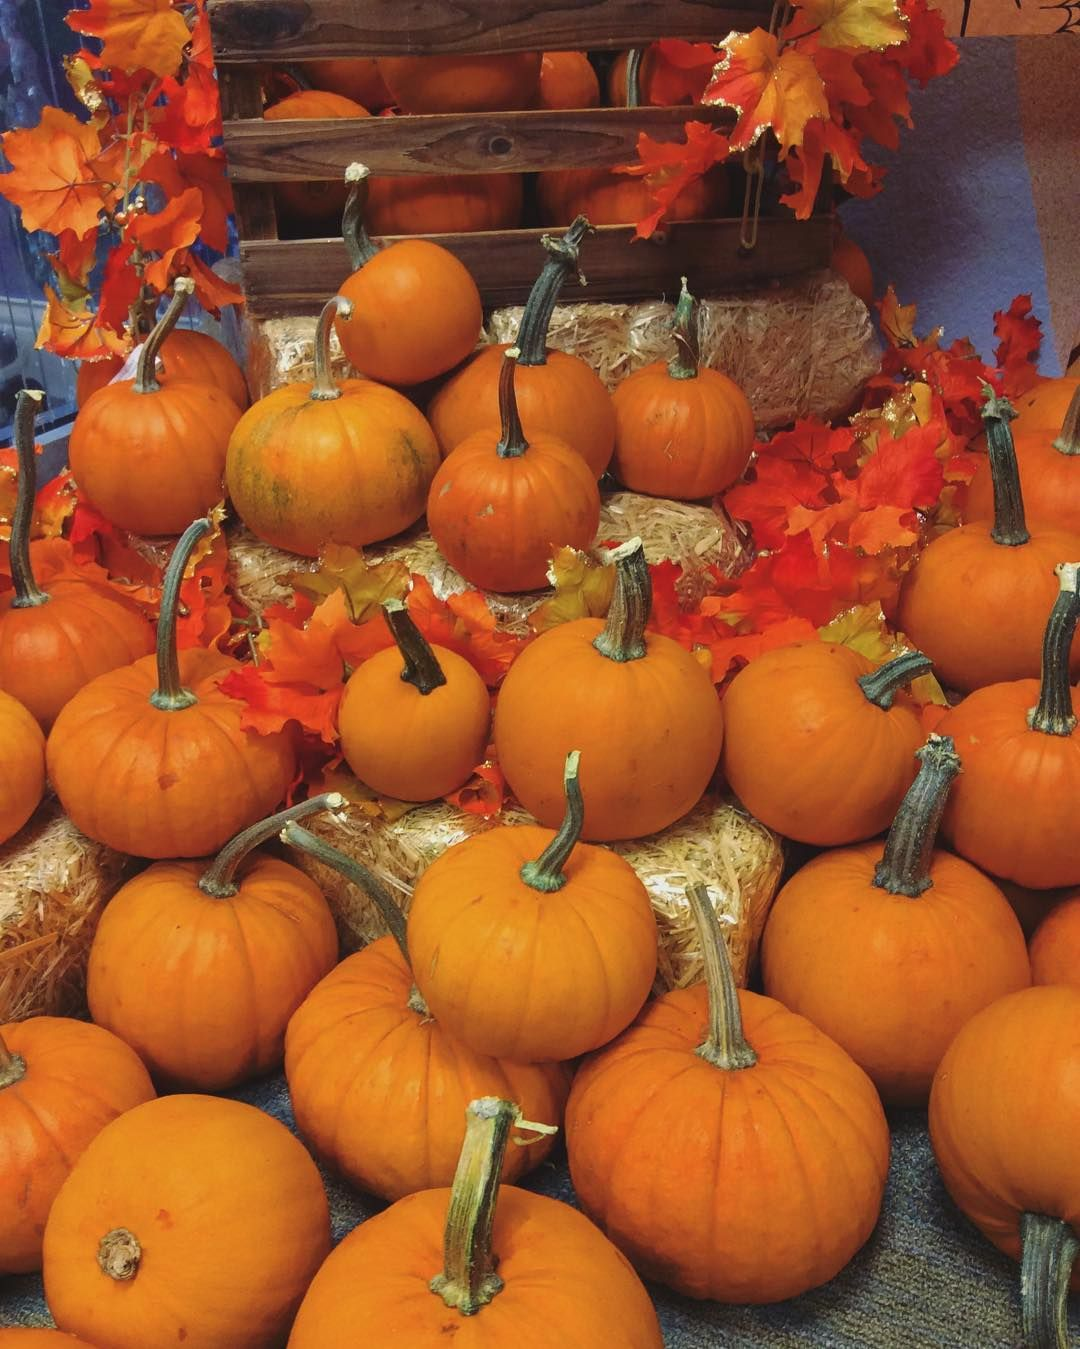 It S National Pumpkin Day What Is Your Favorite Pumpkin Recipe Nationalpumpkinday Weidemandental Favorite Pumpkin Recipes Pumpkin Pumpkin Recipes